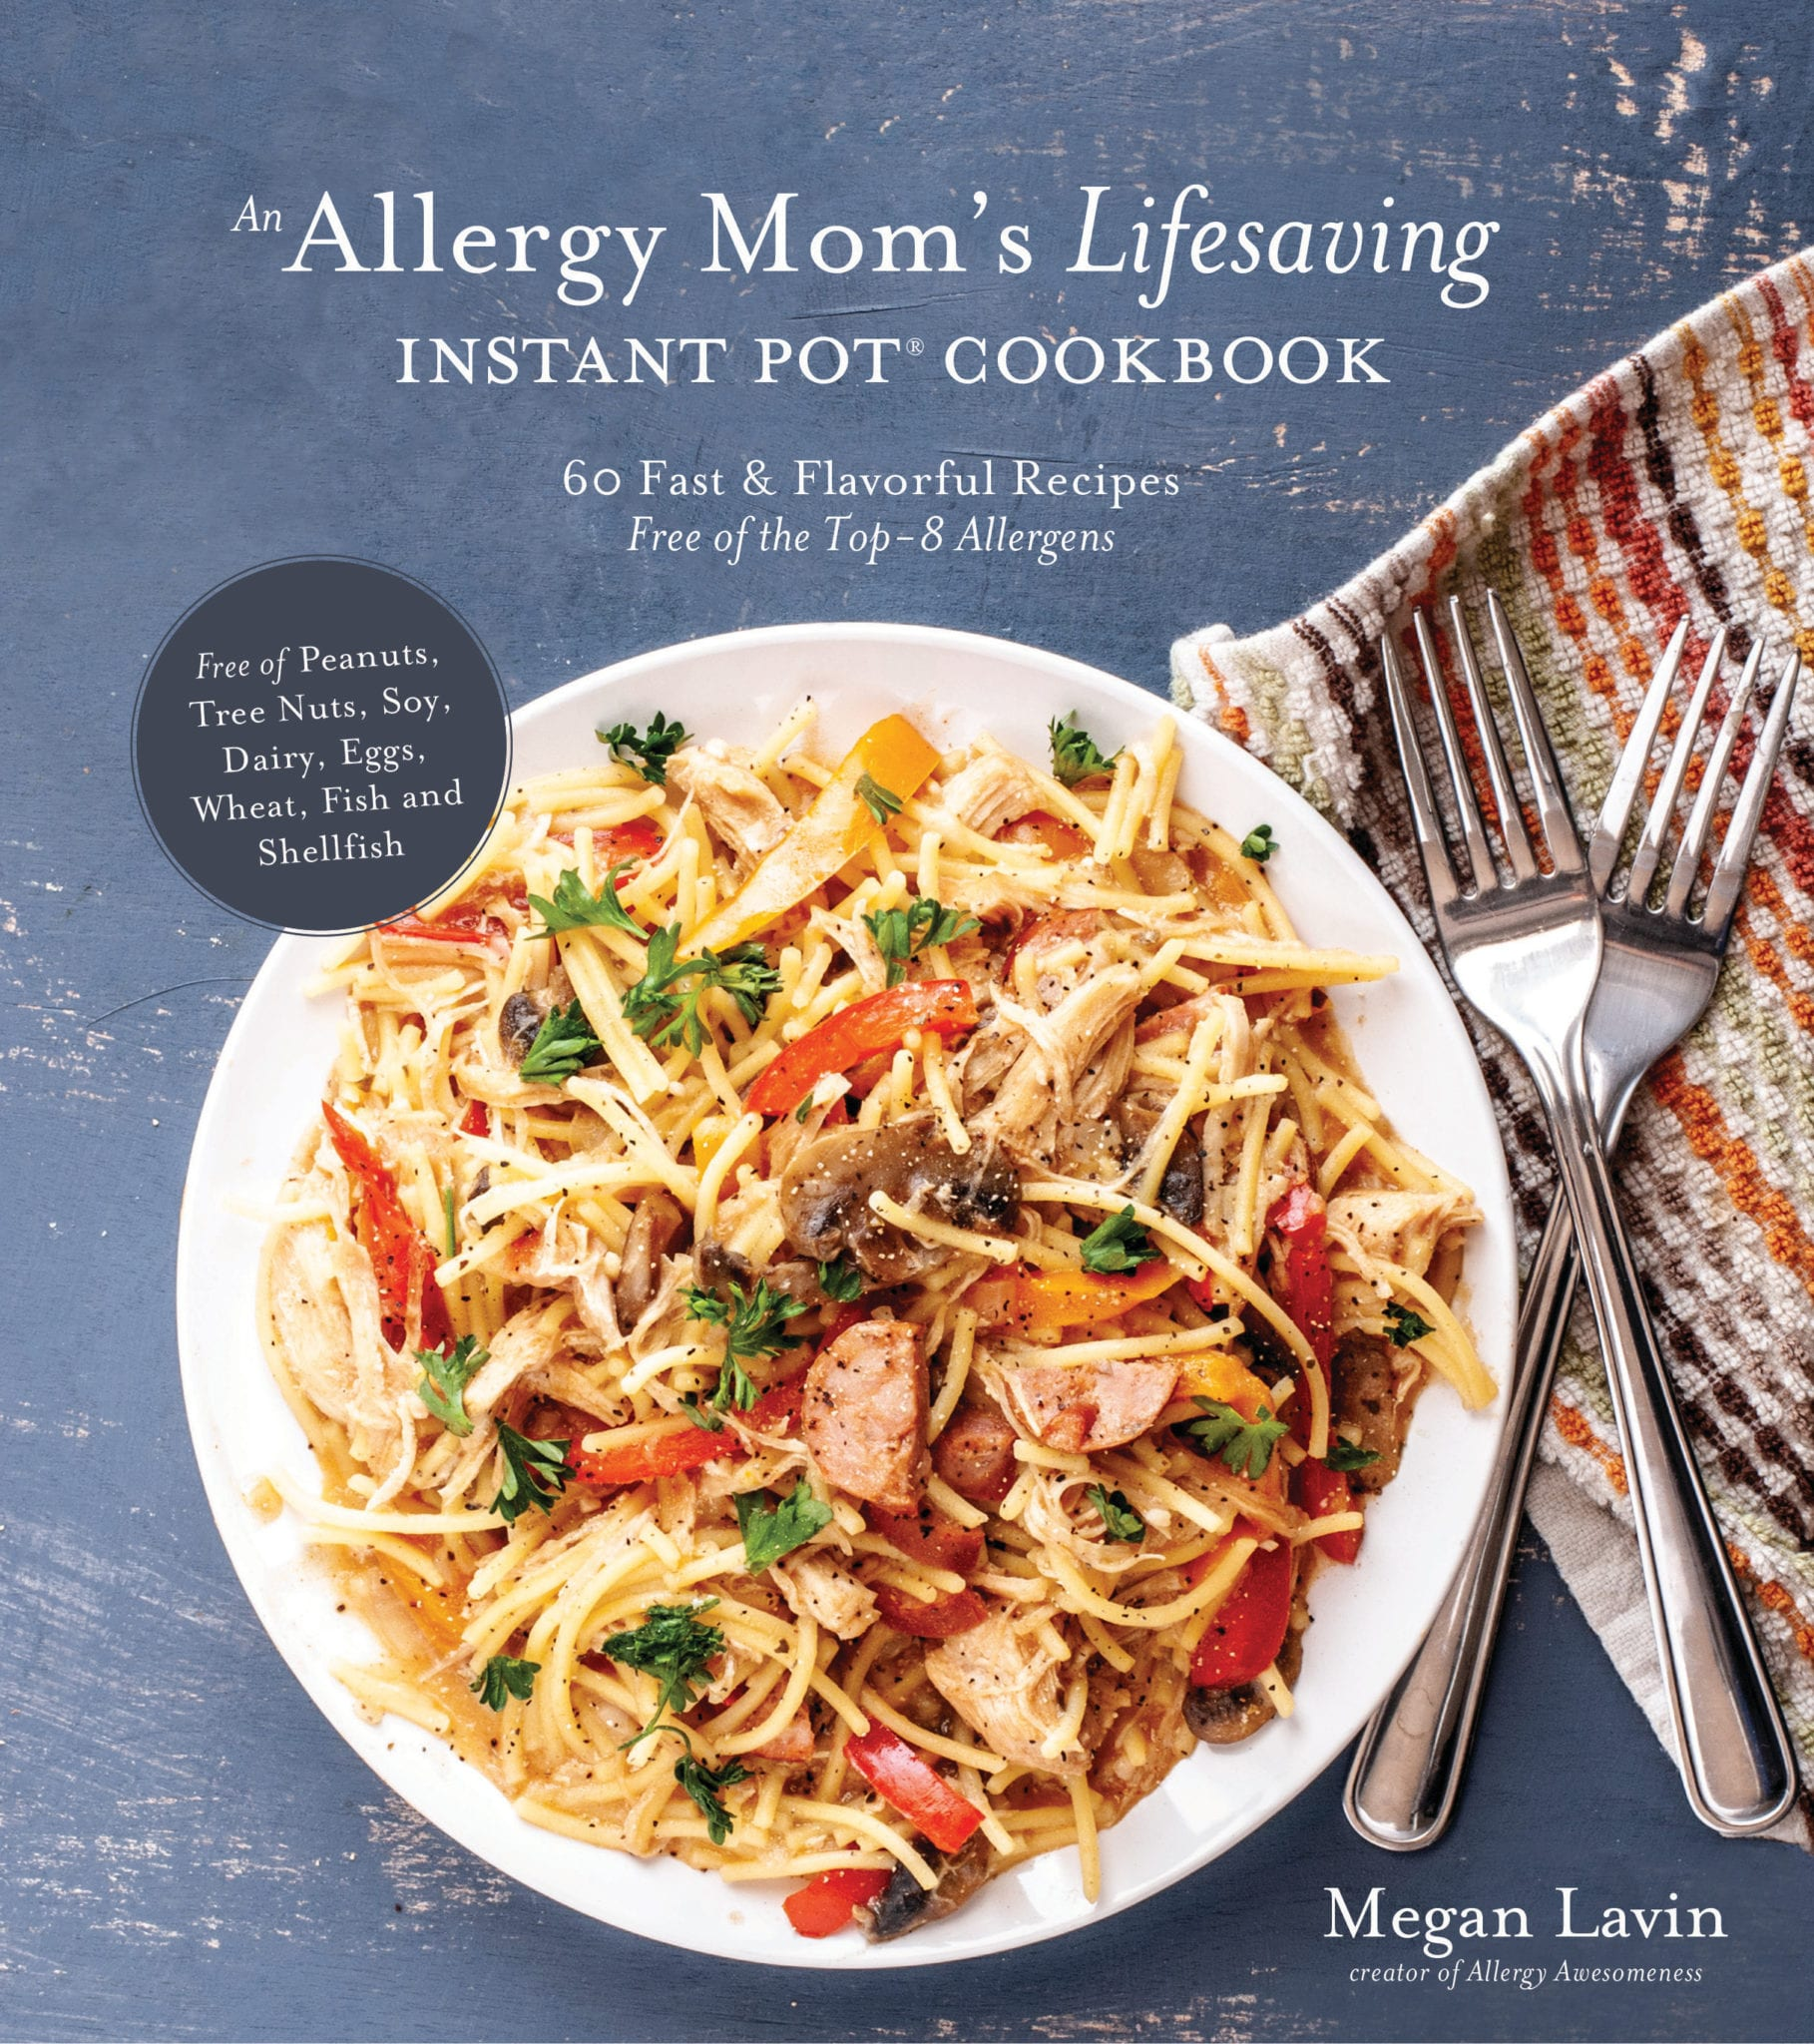 An Allergy Mom's Lifesaving Instant Pot Cookbook: 60 Fast and Flavorful Recipes Free of the Top 8 Allergens